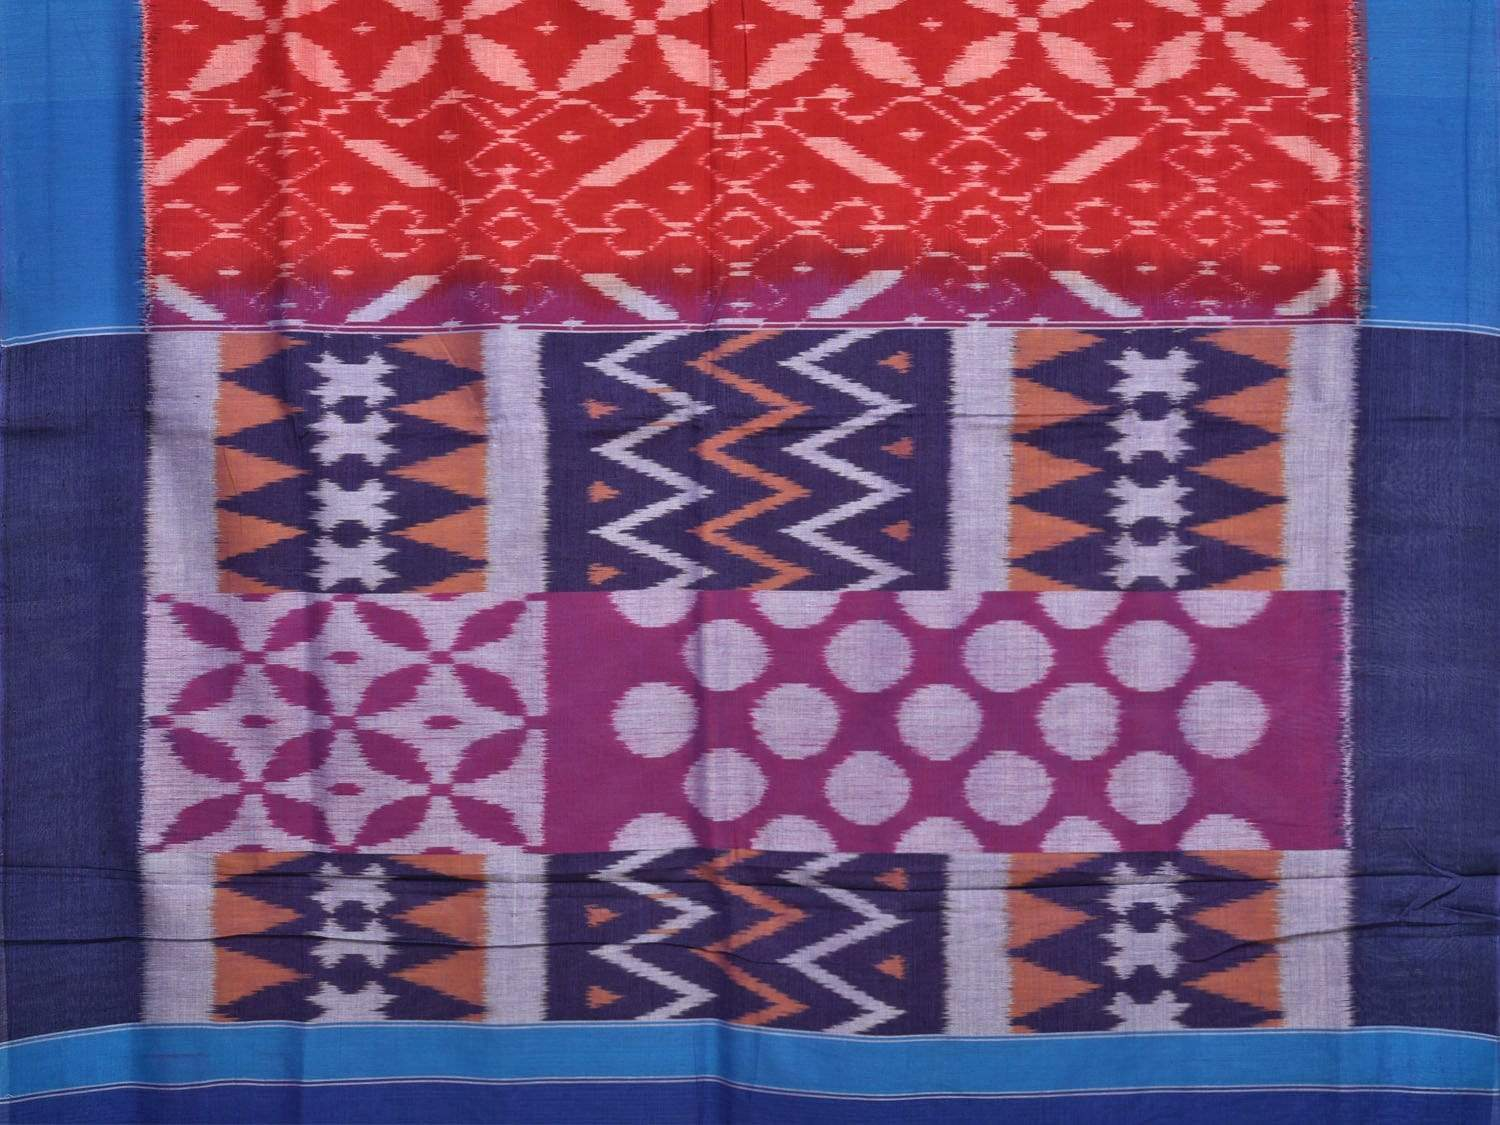 Red and Blue Pochampally Ikat Cotton Handloom Saree with All Over Design No Blouse i0526